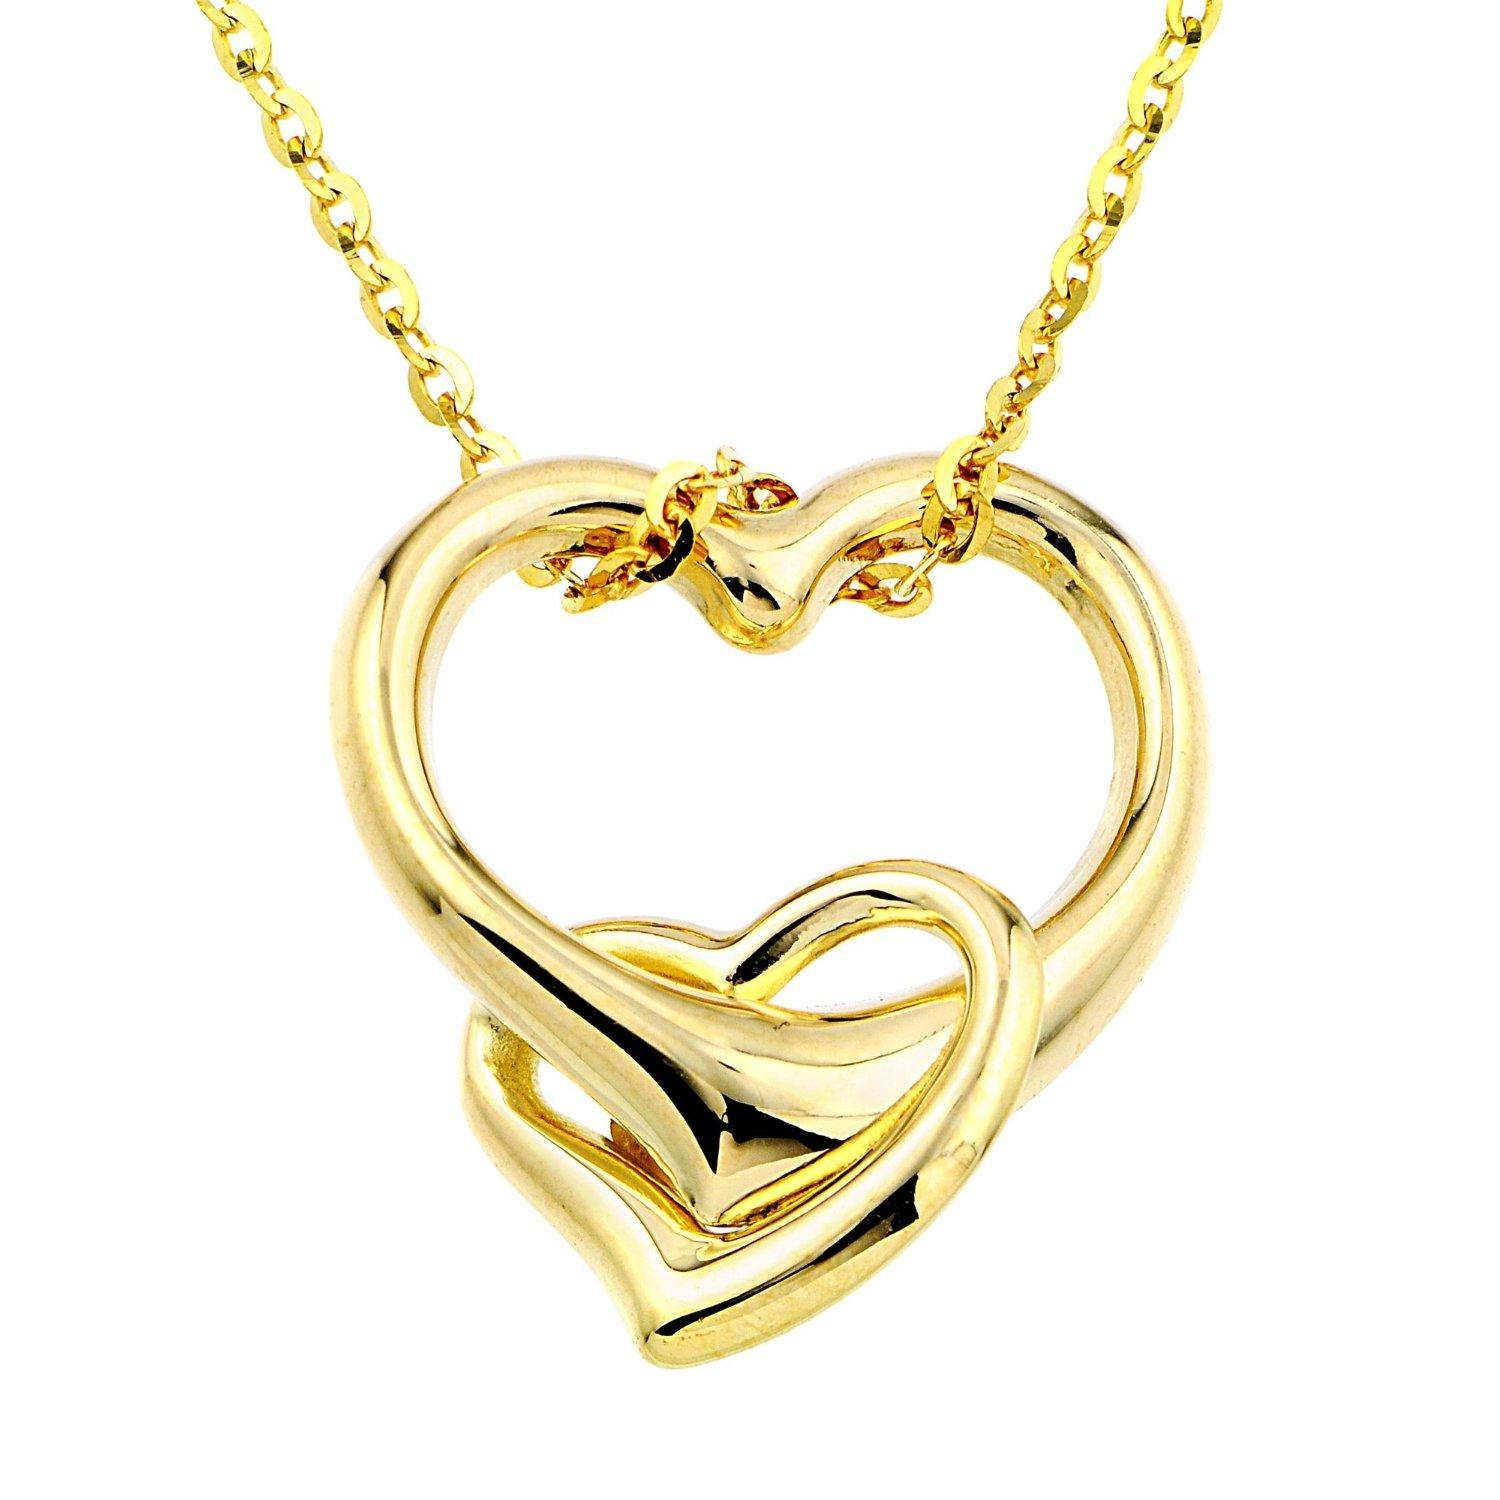 wholesale for jewellery girlfriend heart rotatable necklace stainless steel jewelry